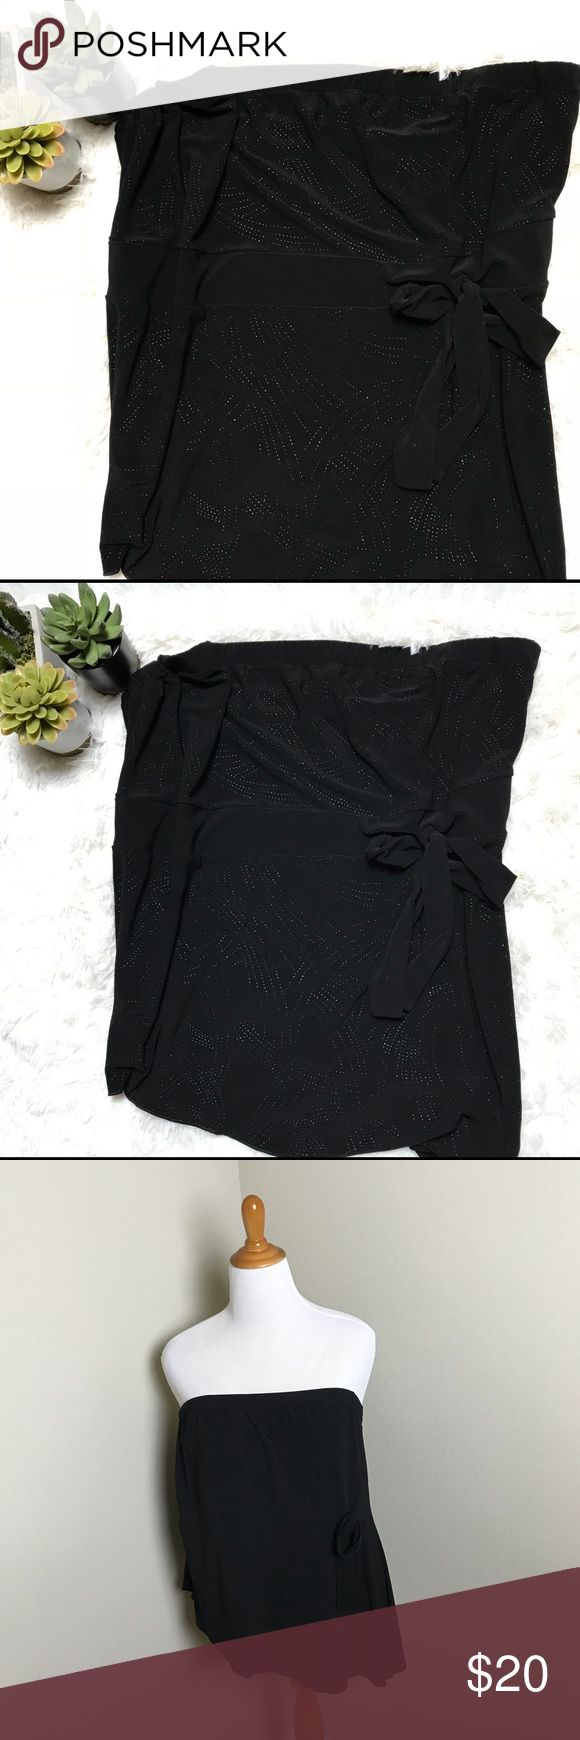 Sparkly black tube top Lovely sparkly black tube top with tie accent.   Photos are the description of the item. Any flaws would be noted, otherwise, garment is in great condition. Lane Bryant Tops